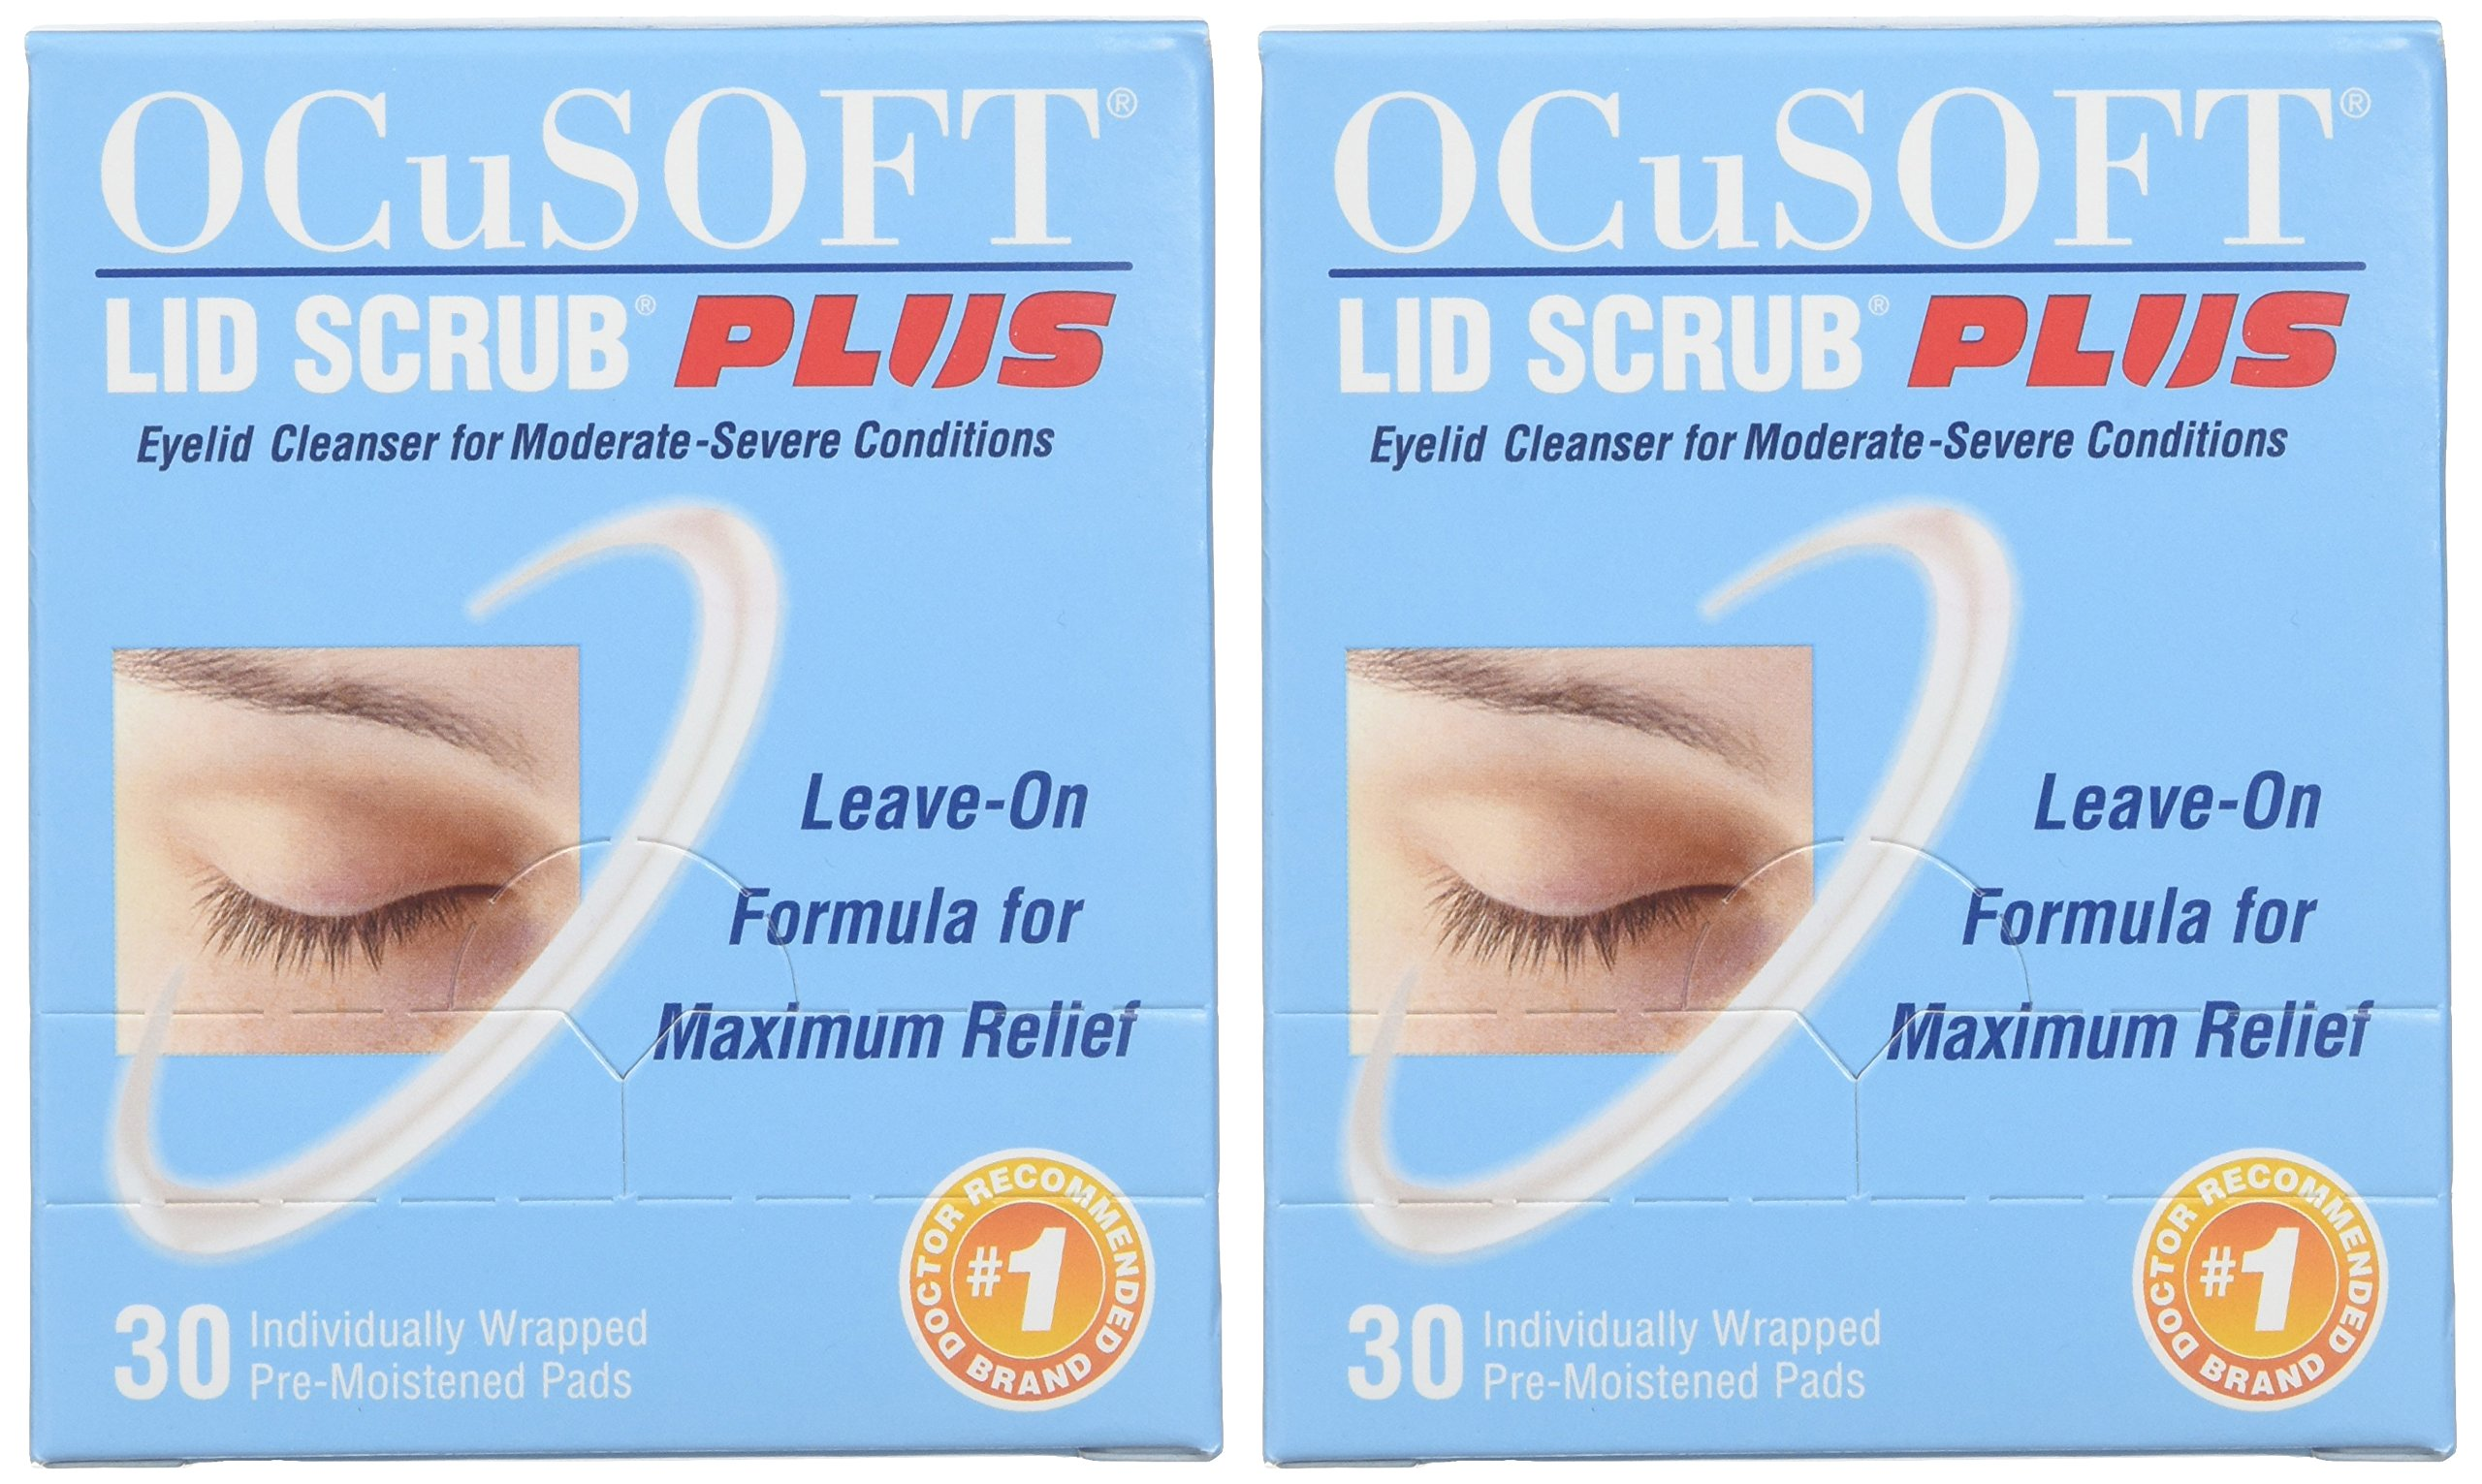 OCuSOFT Lid Scrub Plus, Pre-Moistened Pads, Individually Wrapped, 30 Pads (Pack of 2) by OCuSOFT (Image #2)